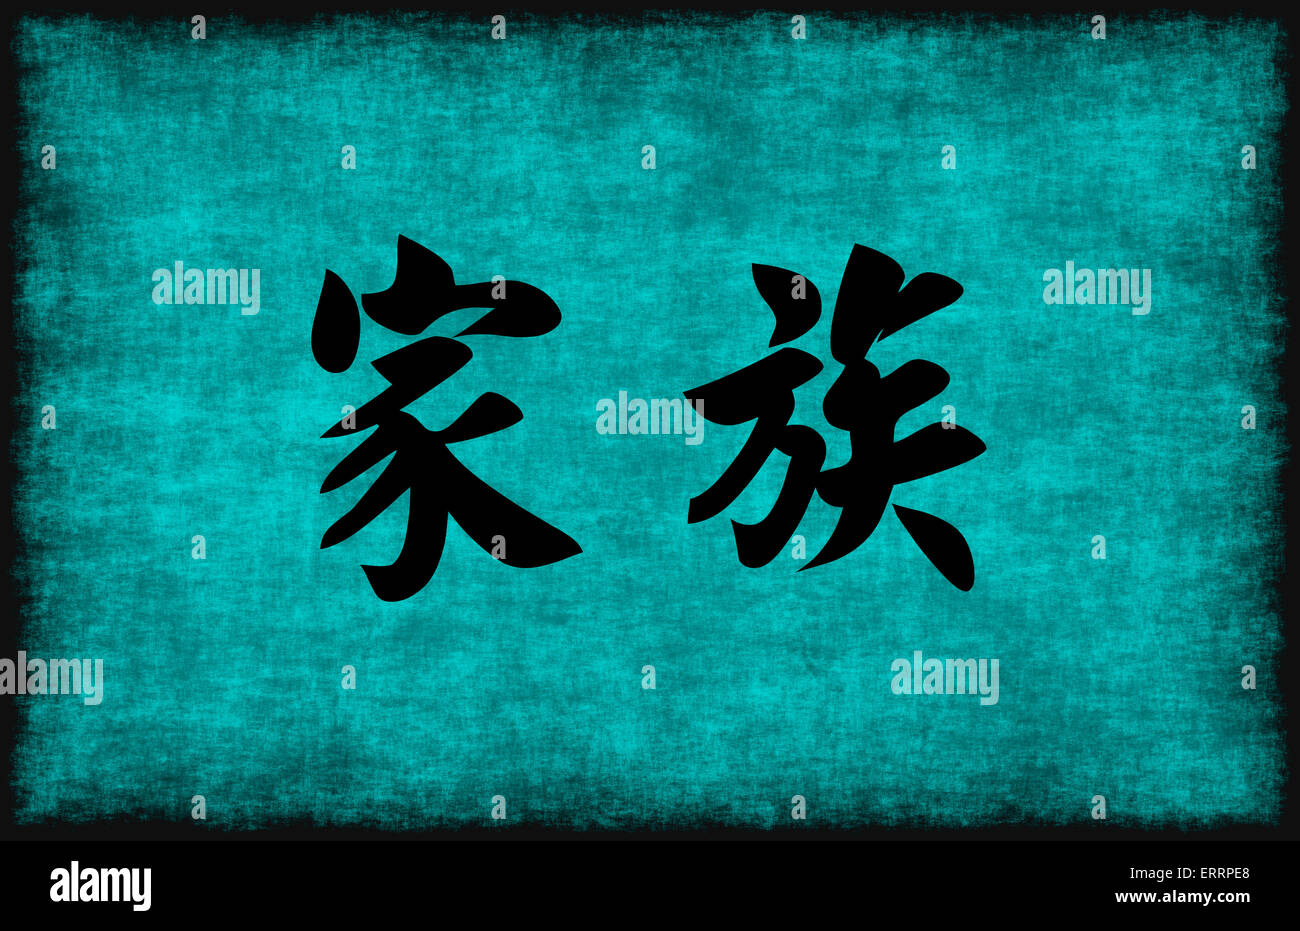 Chinese Character Painting for Family in Blue as Concept - Stock Image